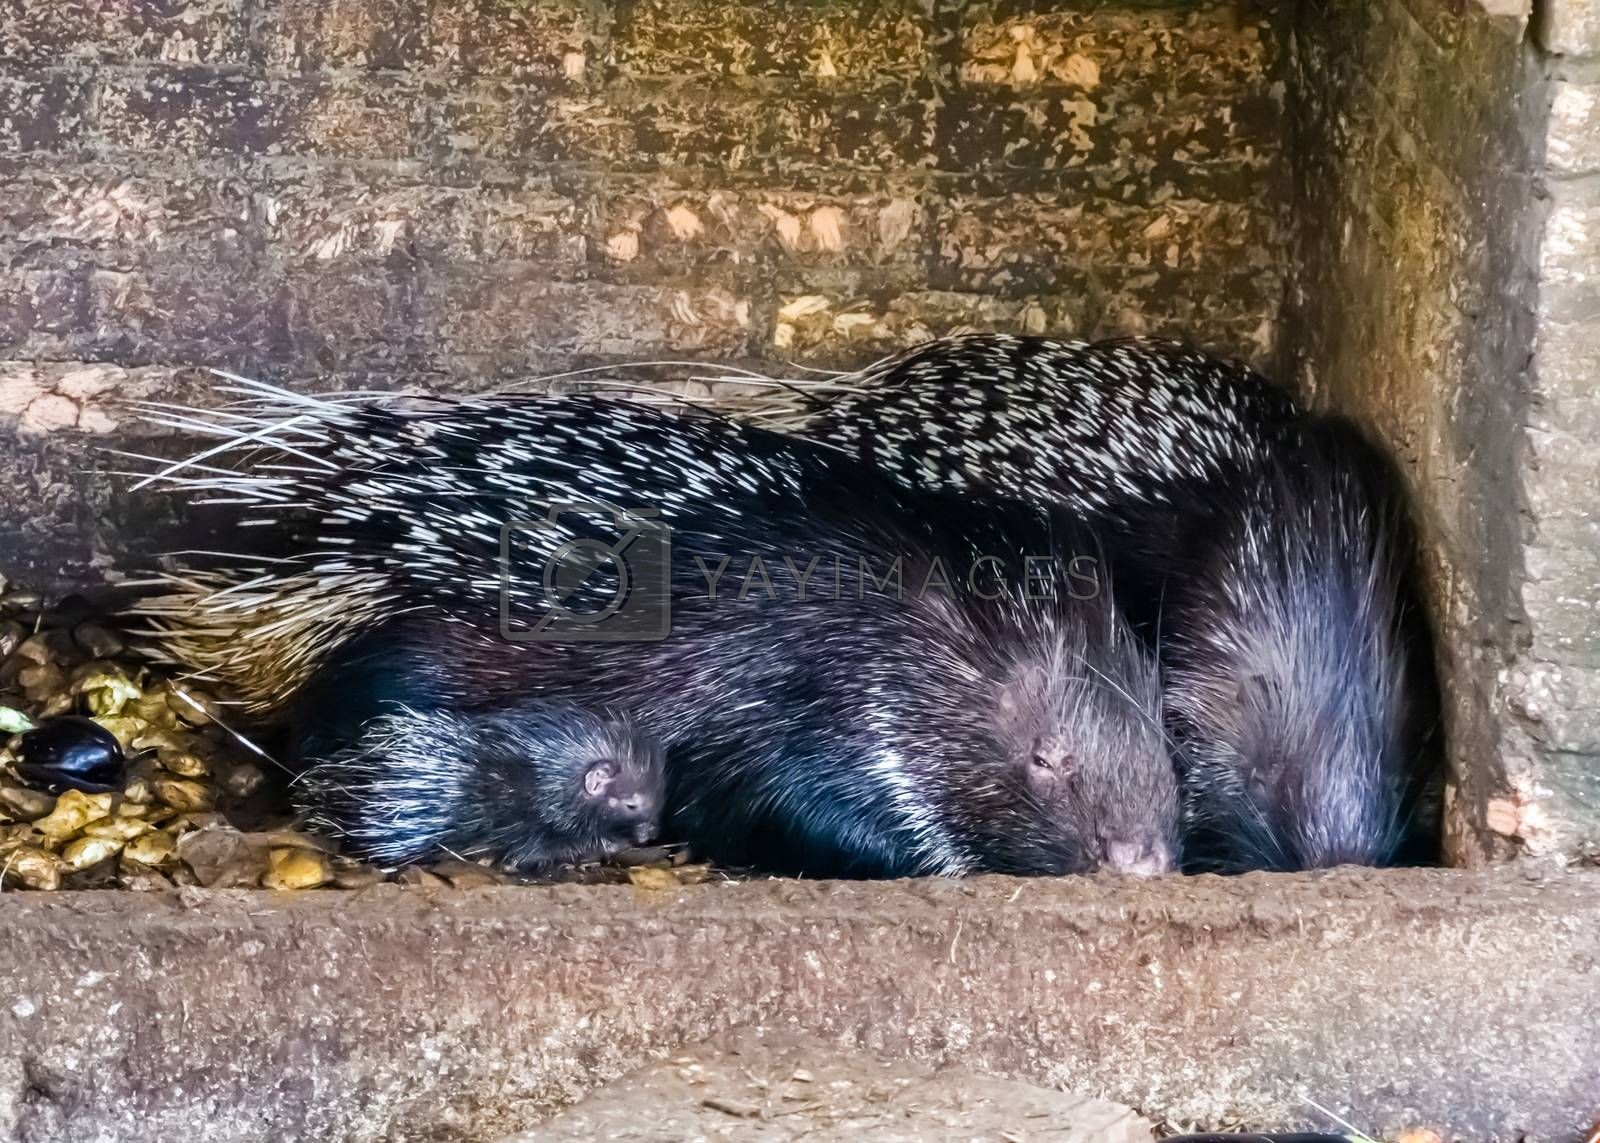 family portrait of a crested porcupine couple with a juvenile, tropical animal specie from Africa